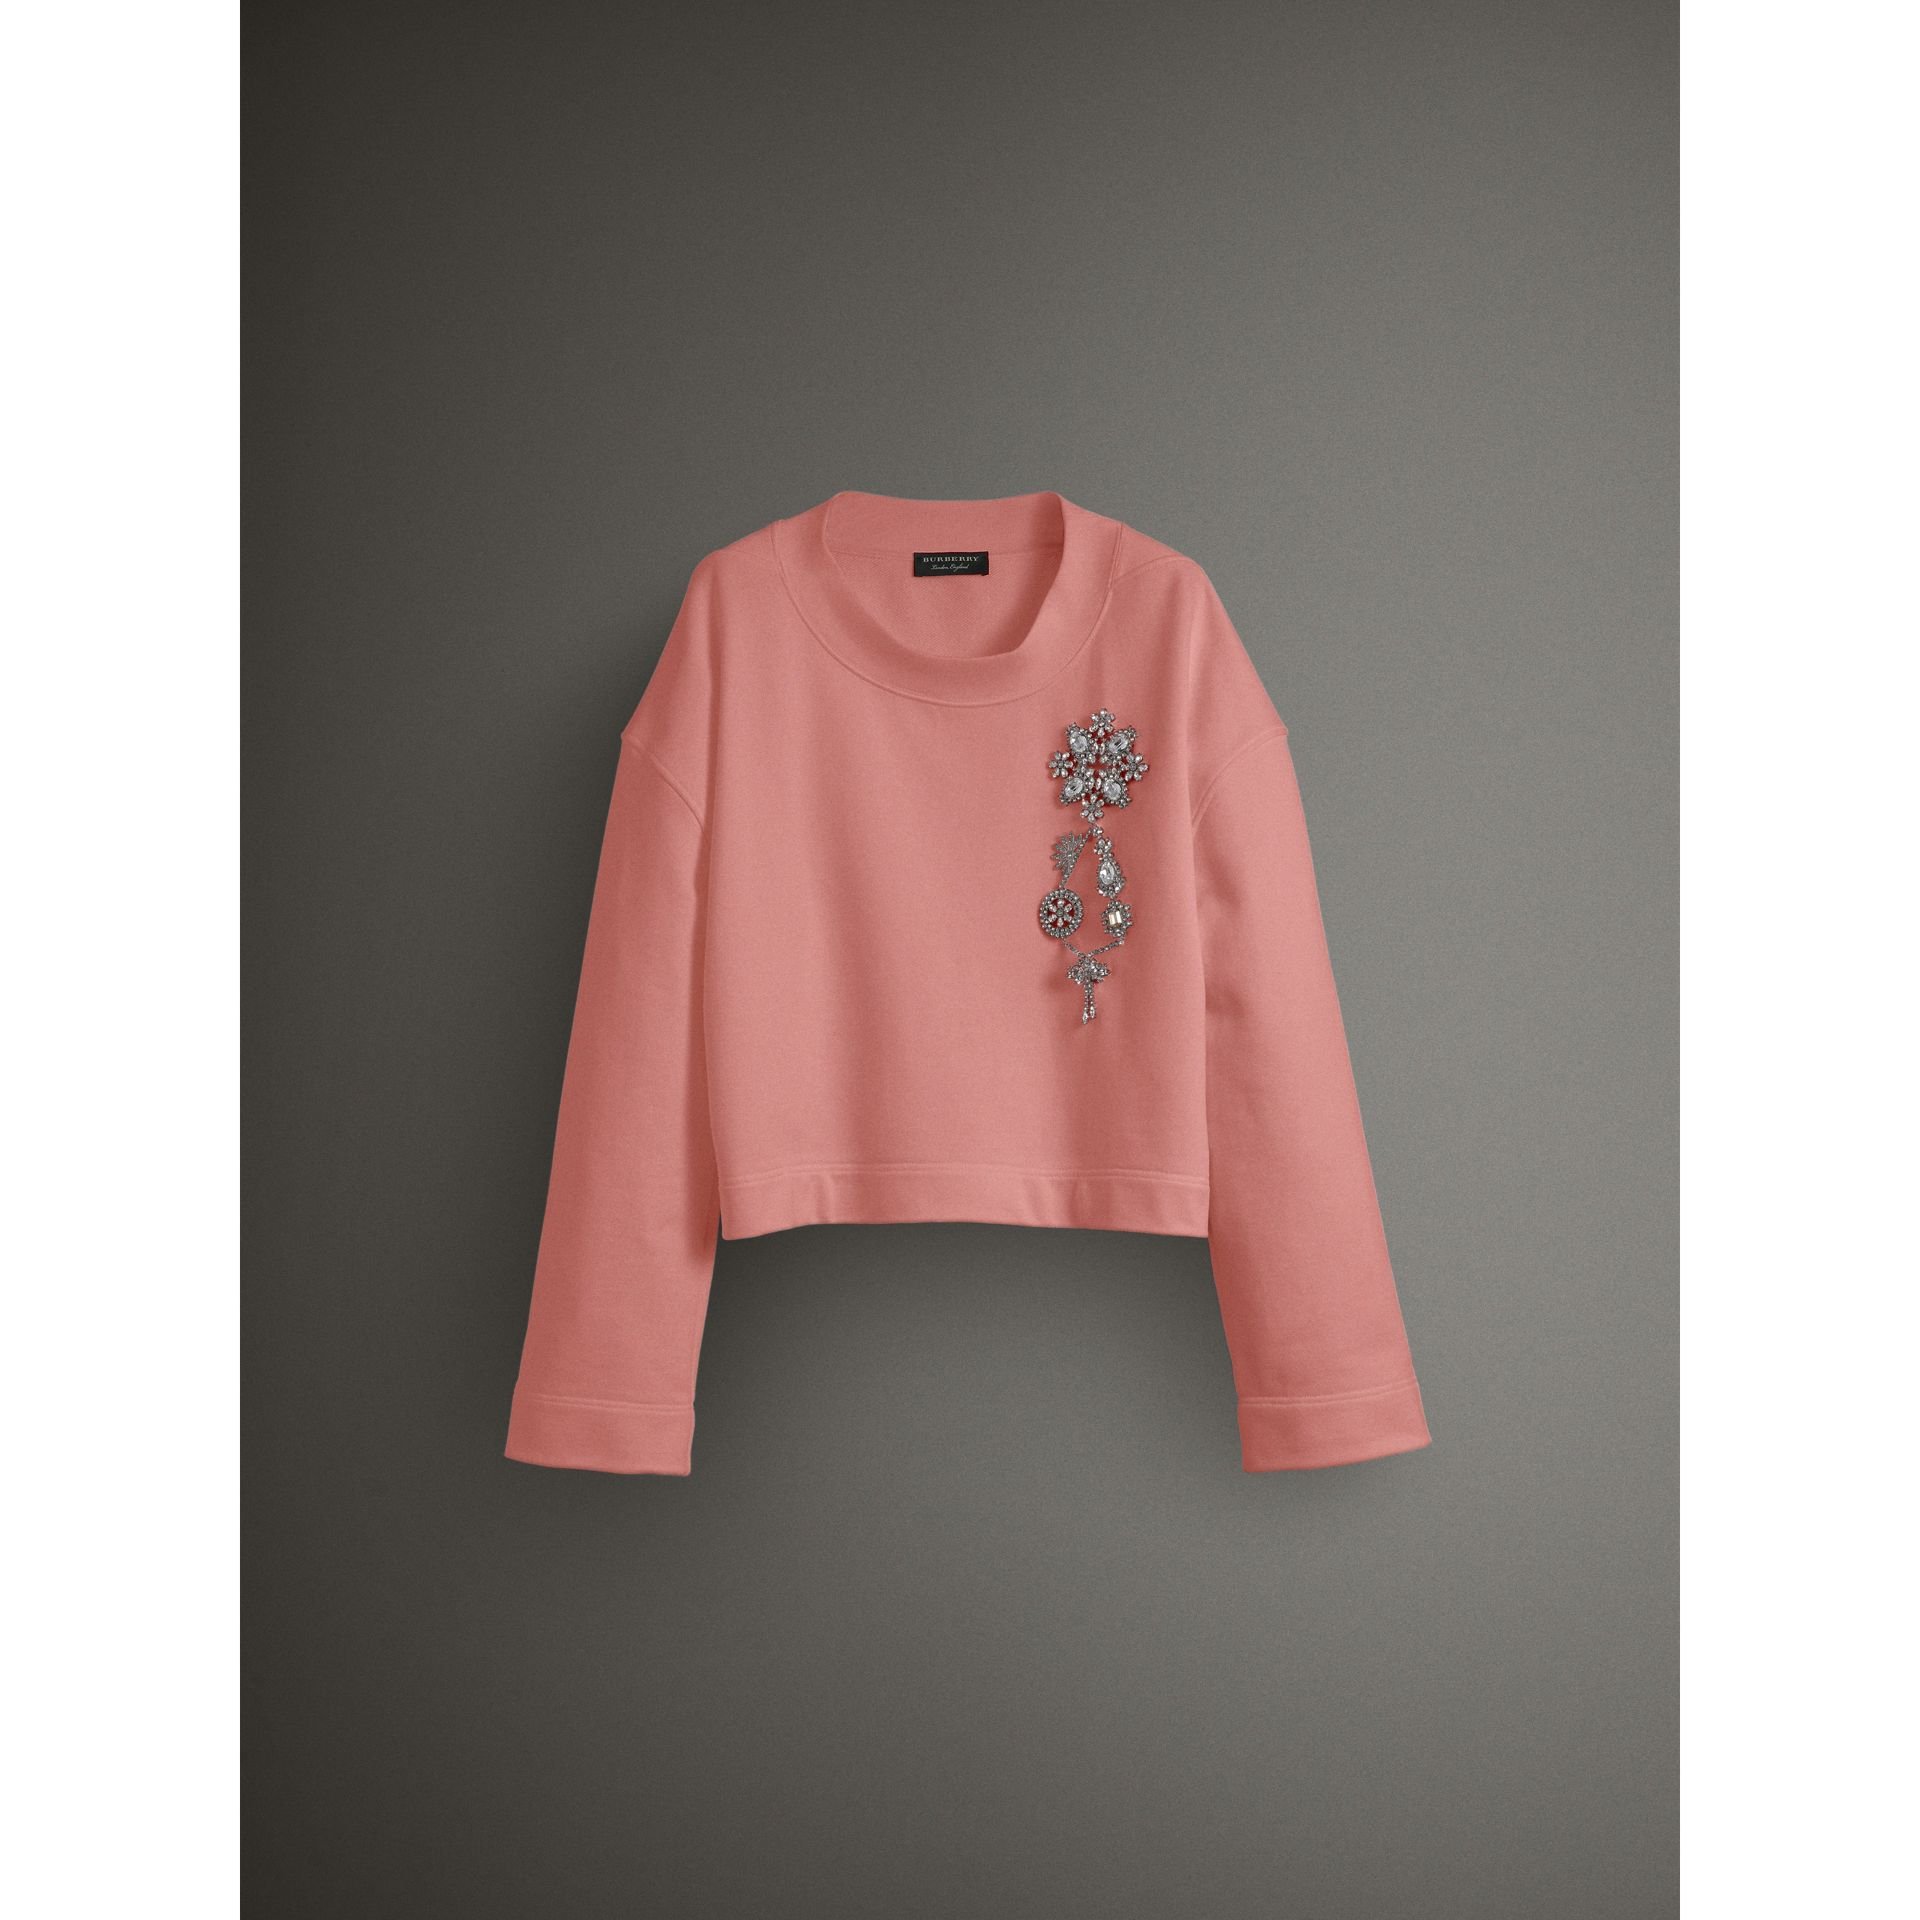 Cropped Sweatshirt with Crystal Brooch in Vintage Rose - Women | Burberry - gallery image 4